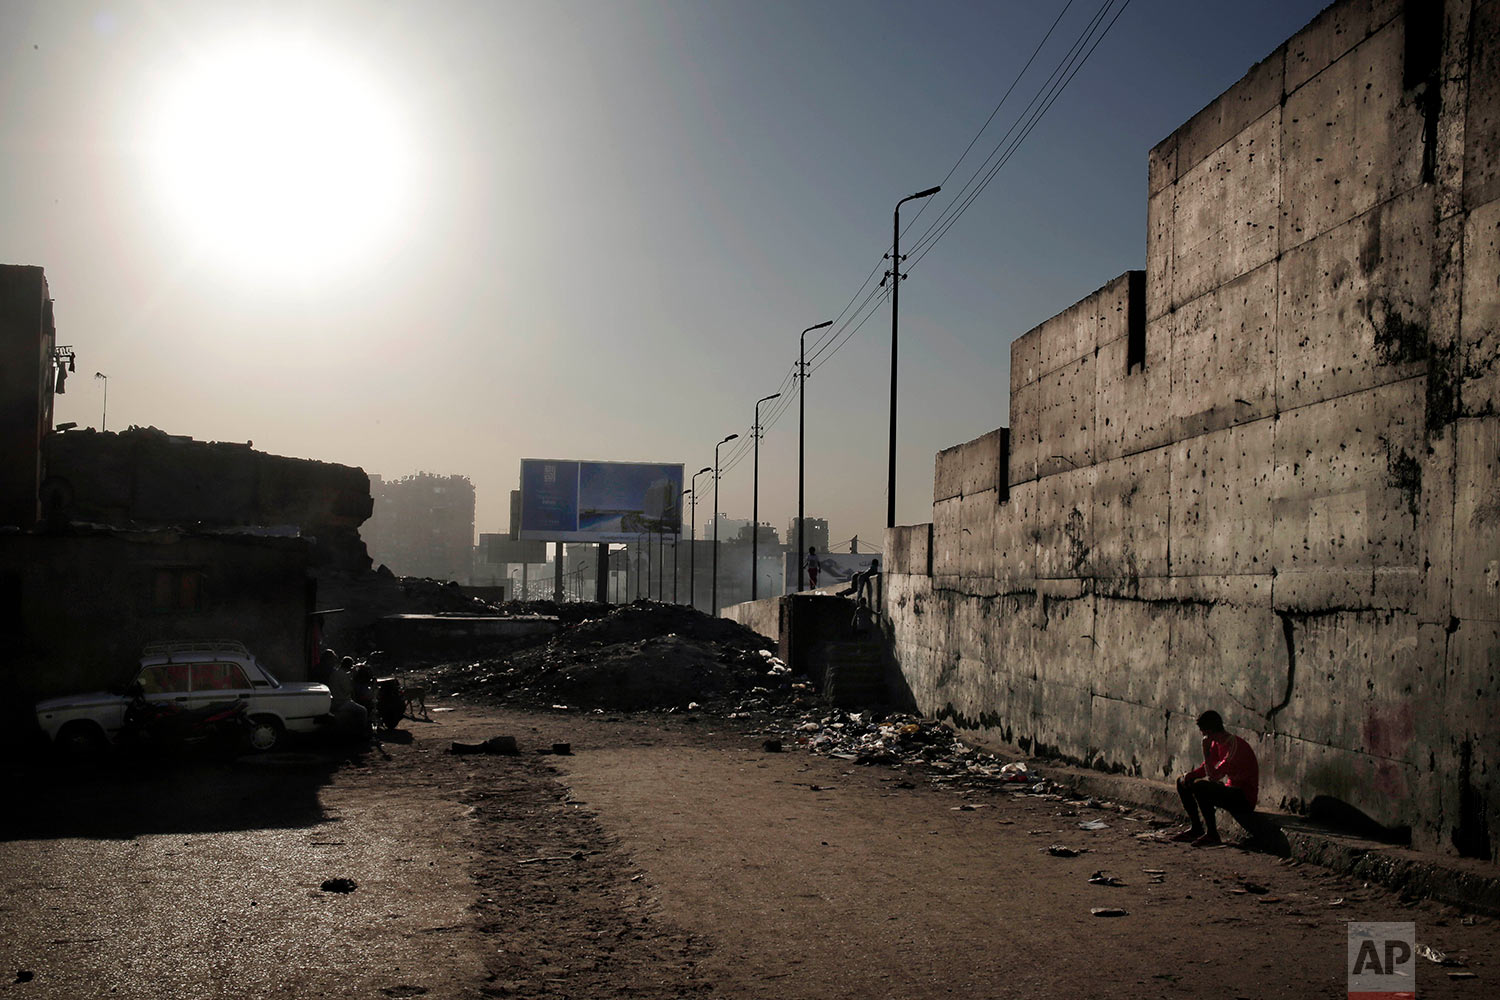 In this Oct. 28, 2018 photo, a man sits under a wall that separates the ring road from slum area Ezbet Khairallah, in Cairo, Egypt. (AP Photo/Nariman El-Mofty)